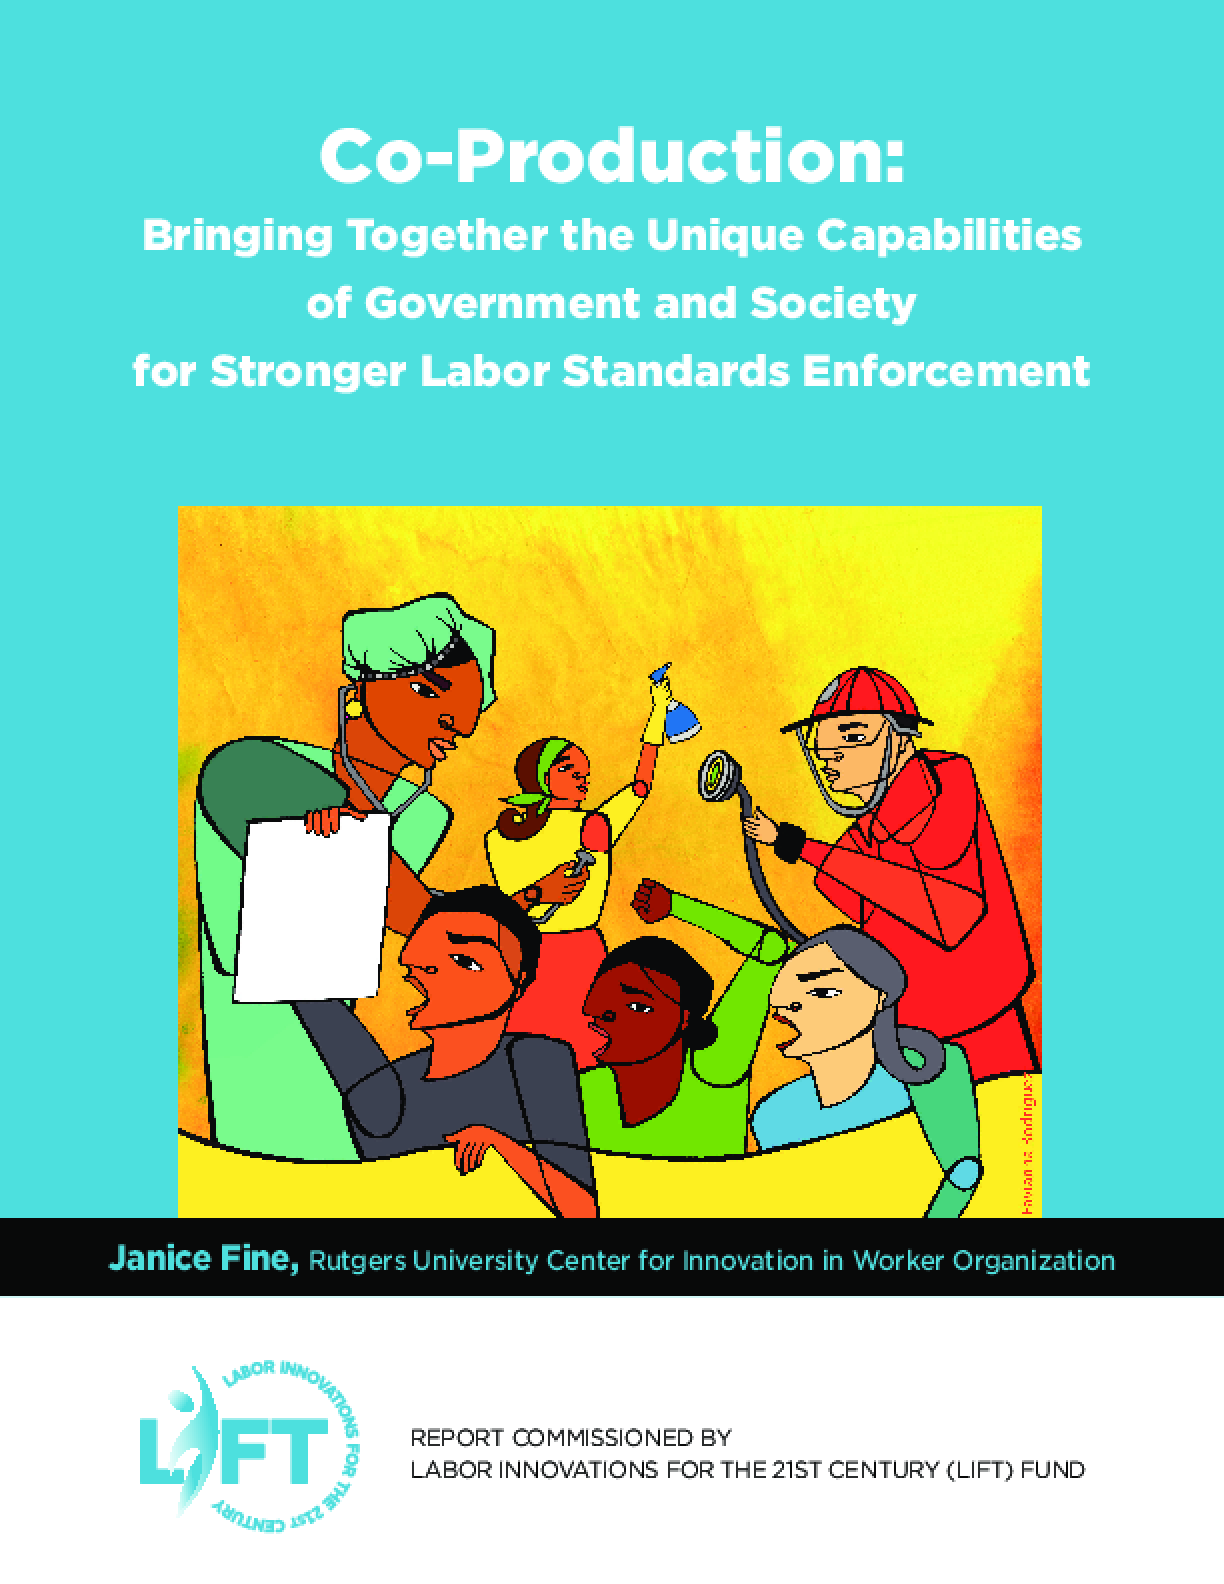 Co-Production: Bringing Together the Unique Capabilities of Government and Society for Stronger Labor Standards Enforcement